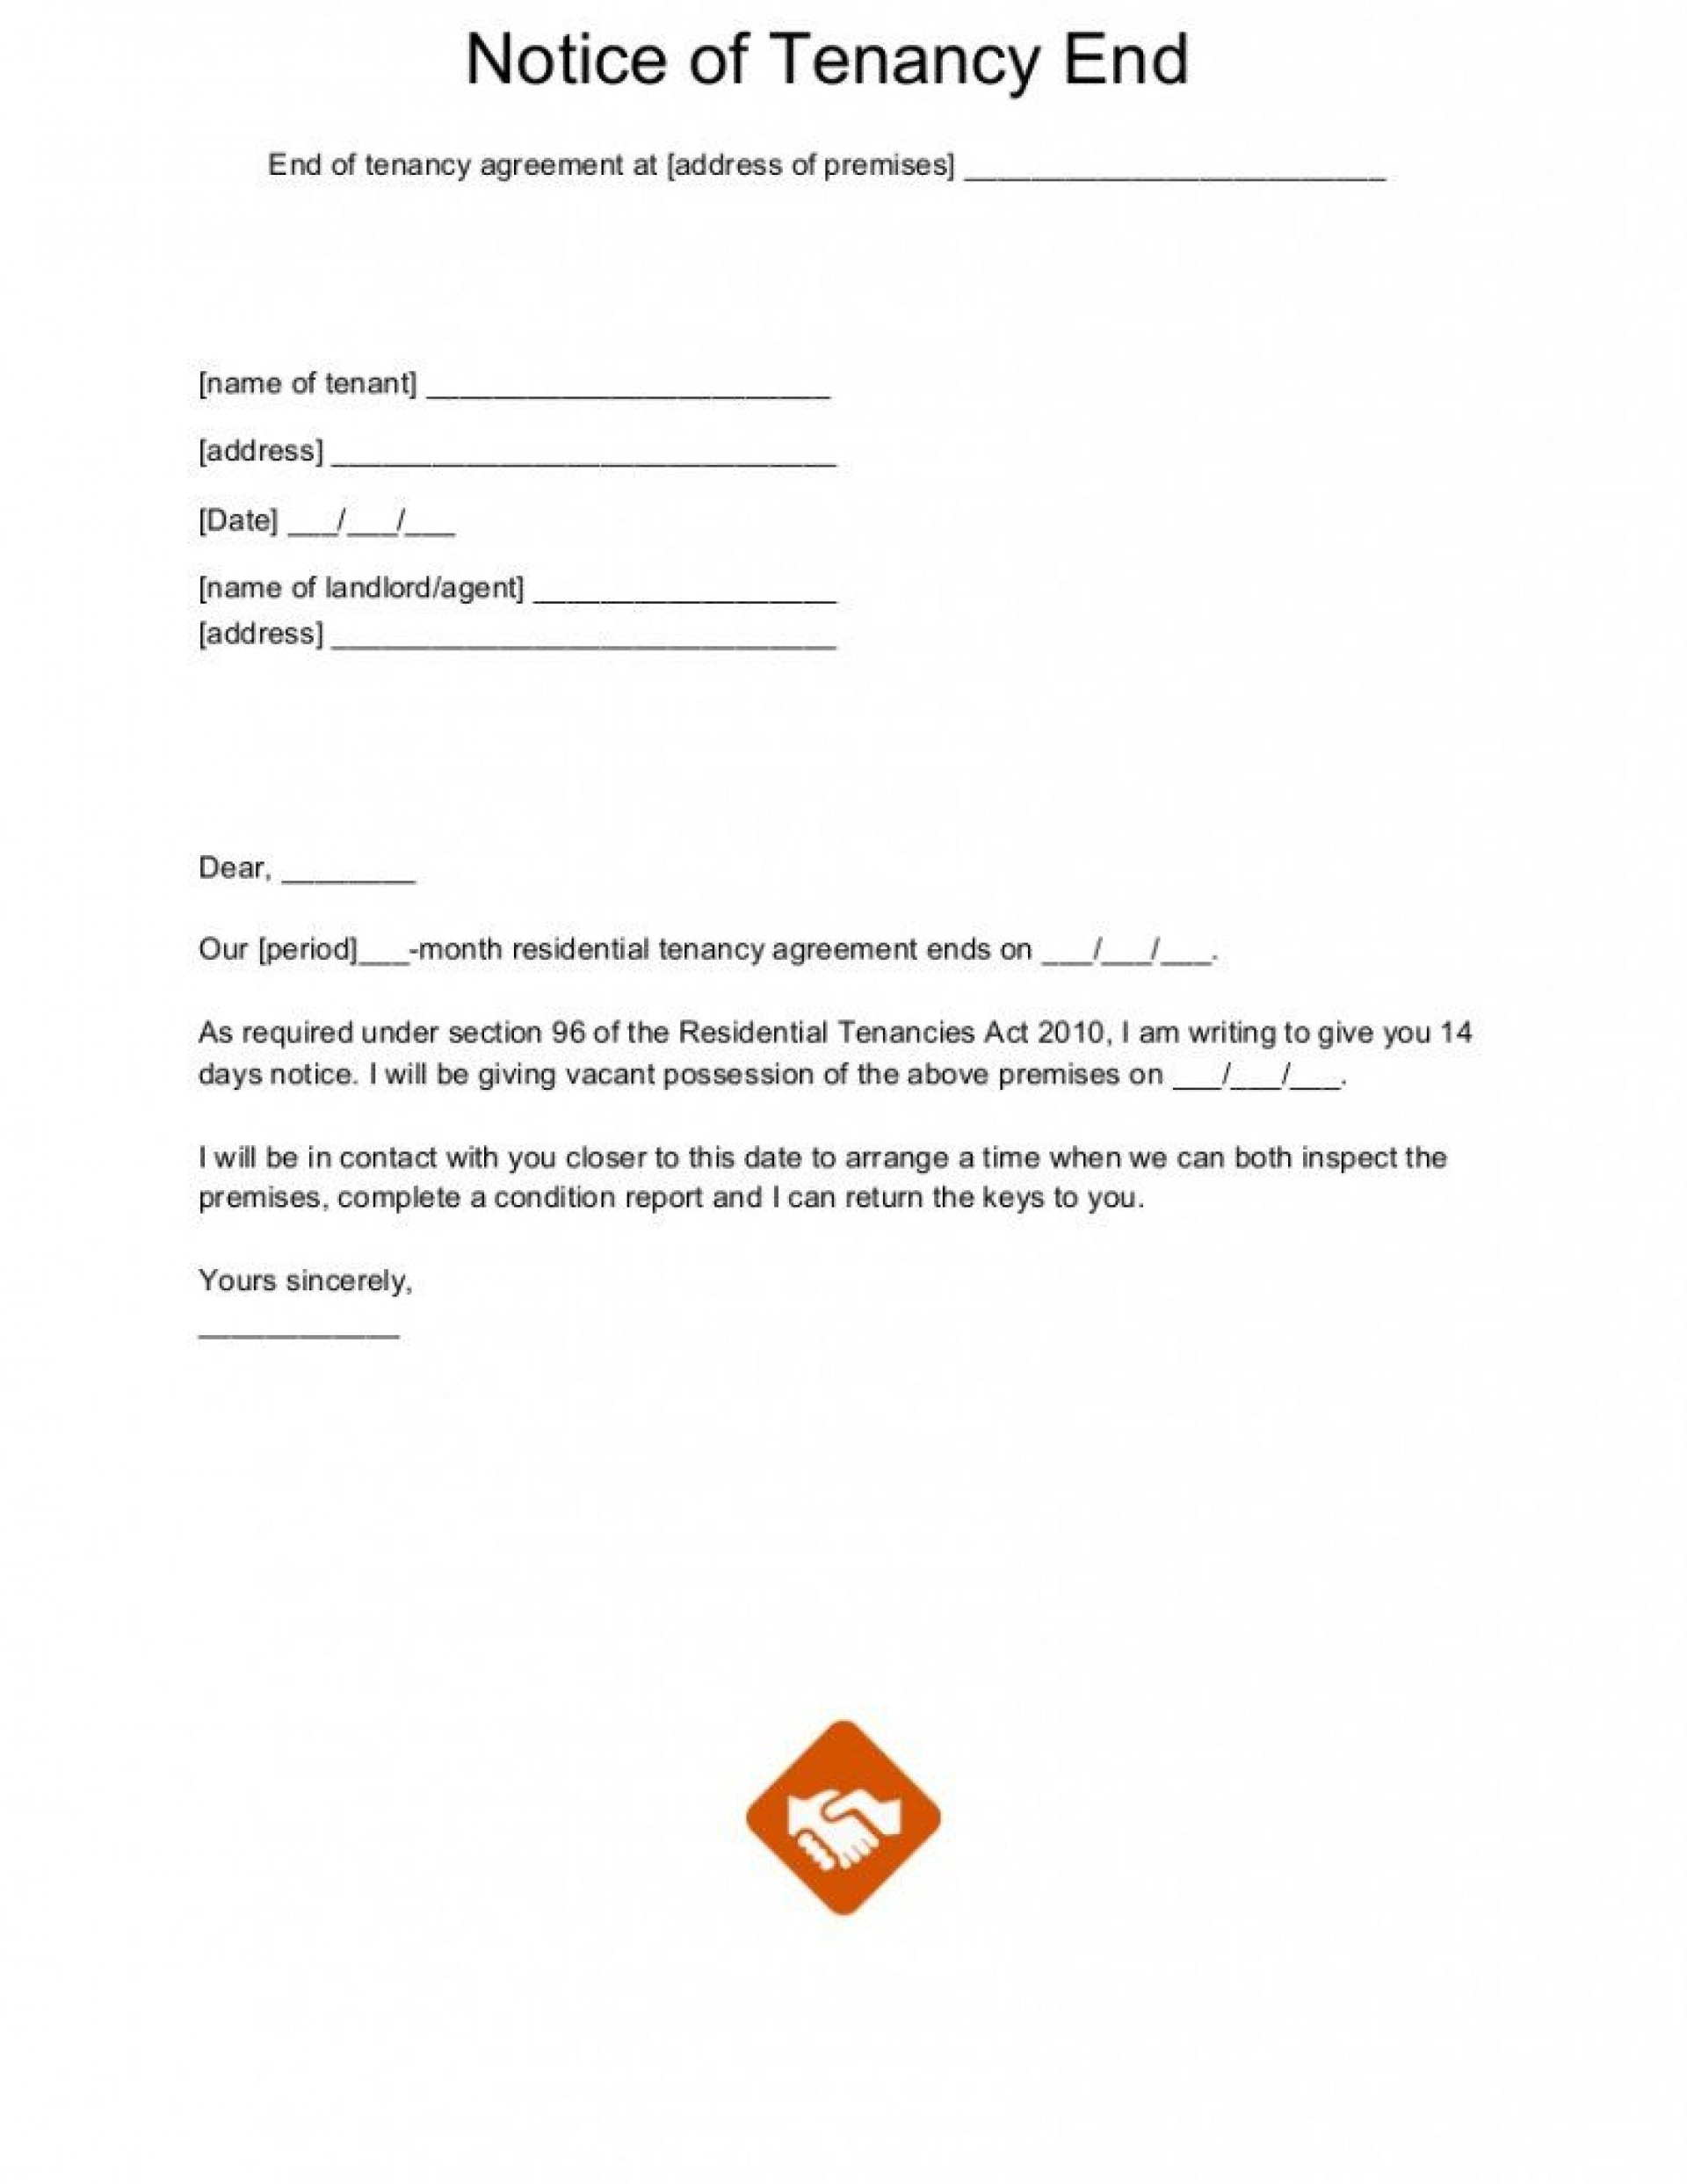 003 Wonderful Template For Terminating A Lease Agreement High Definition  Rental Sample Letter1920